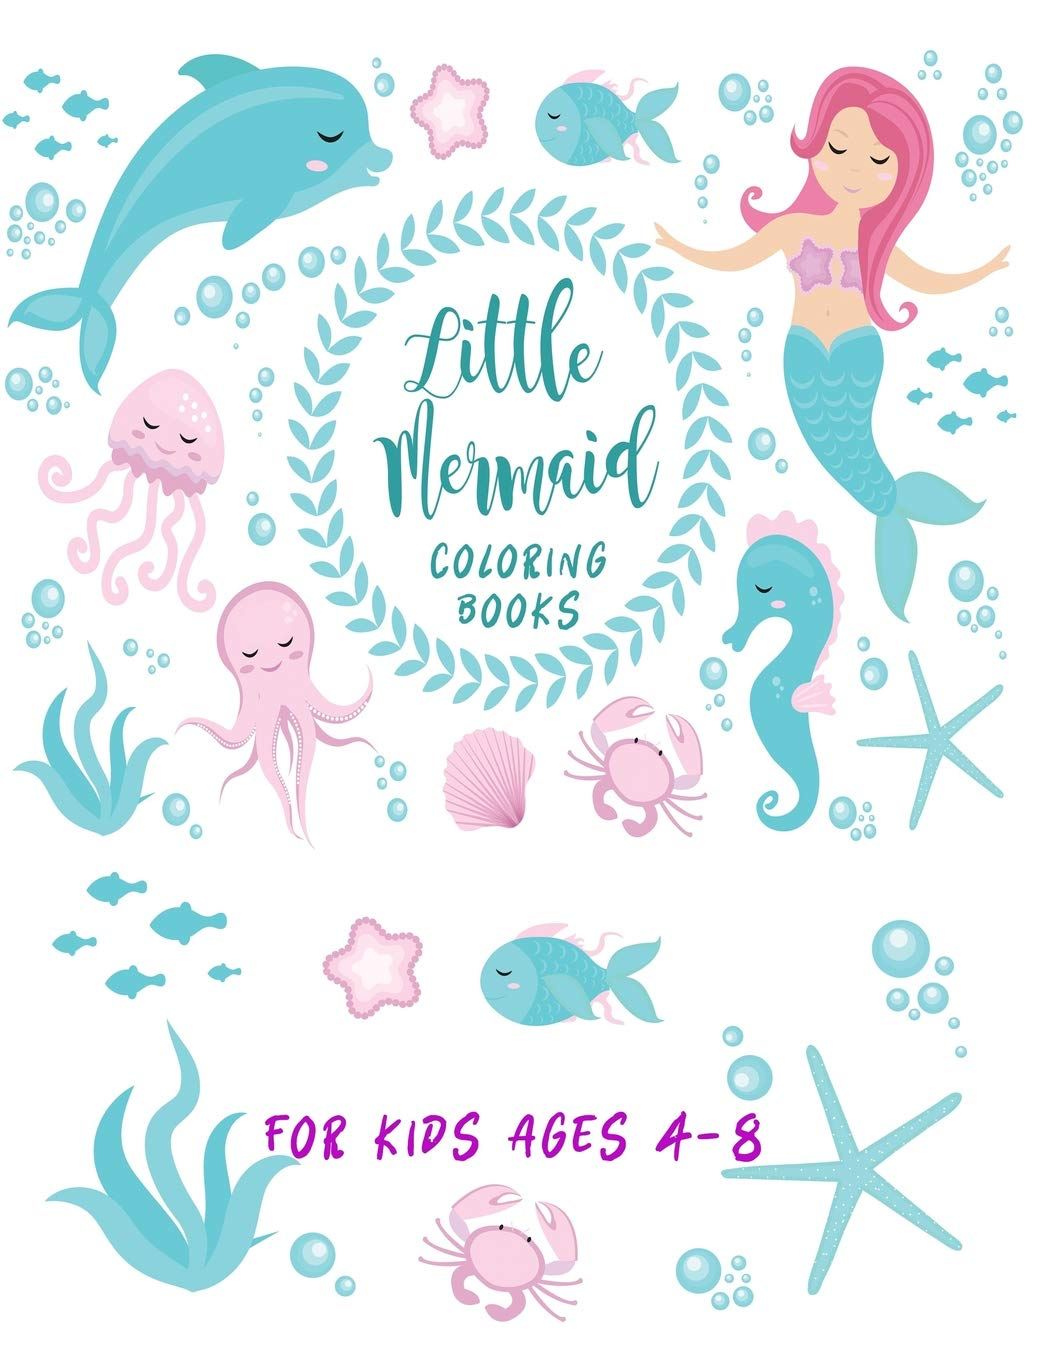 - Amazon.com: Little Mermaid Coloring Books For Kids Ages 4-8: Cute